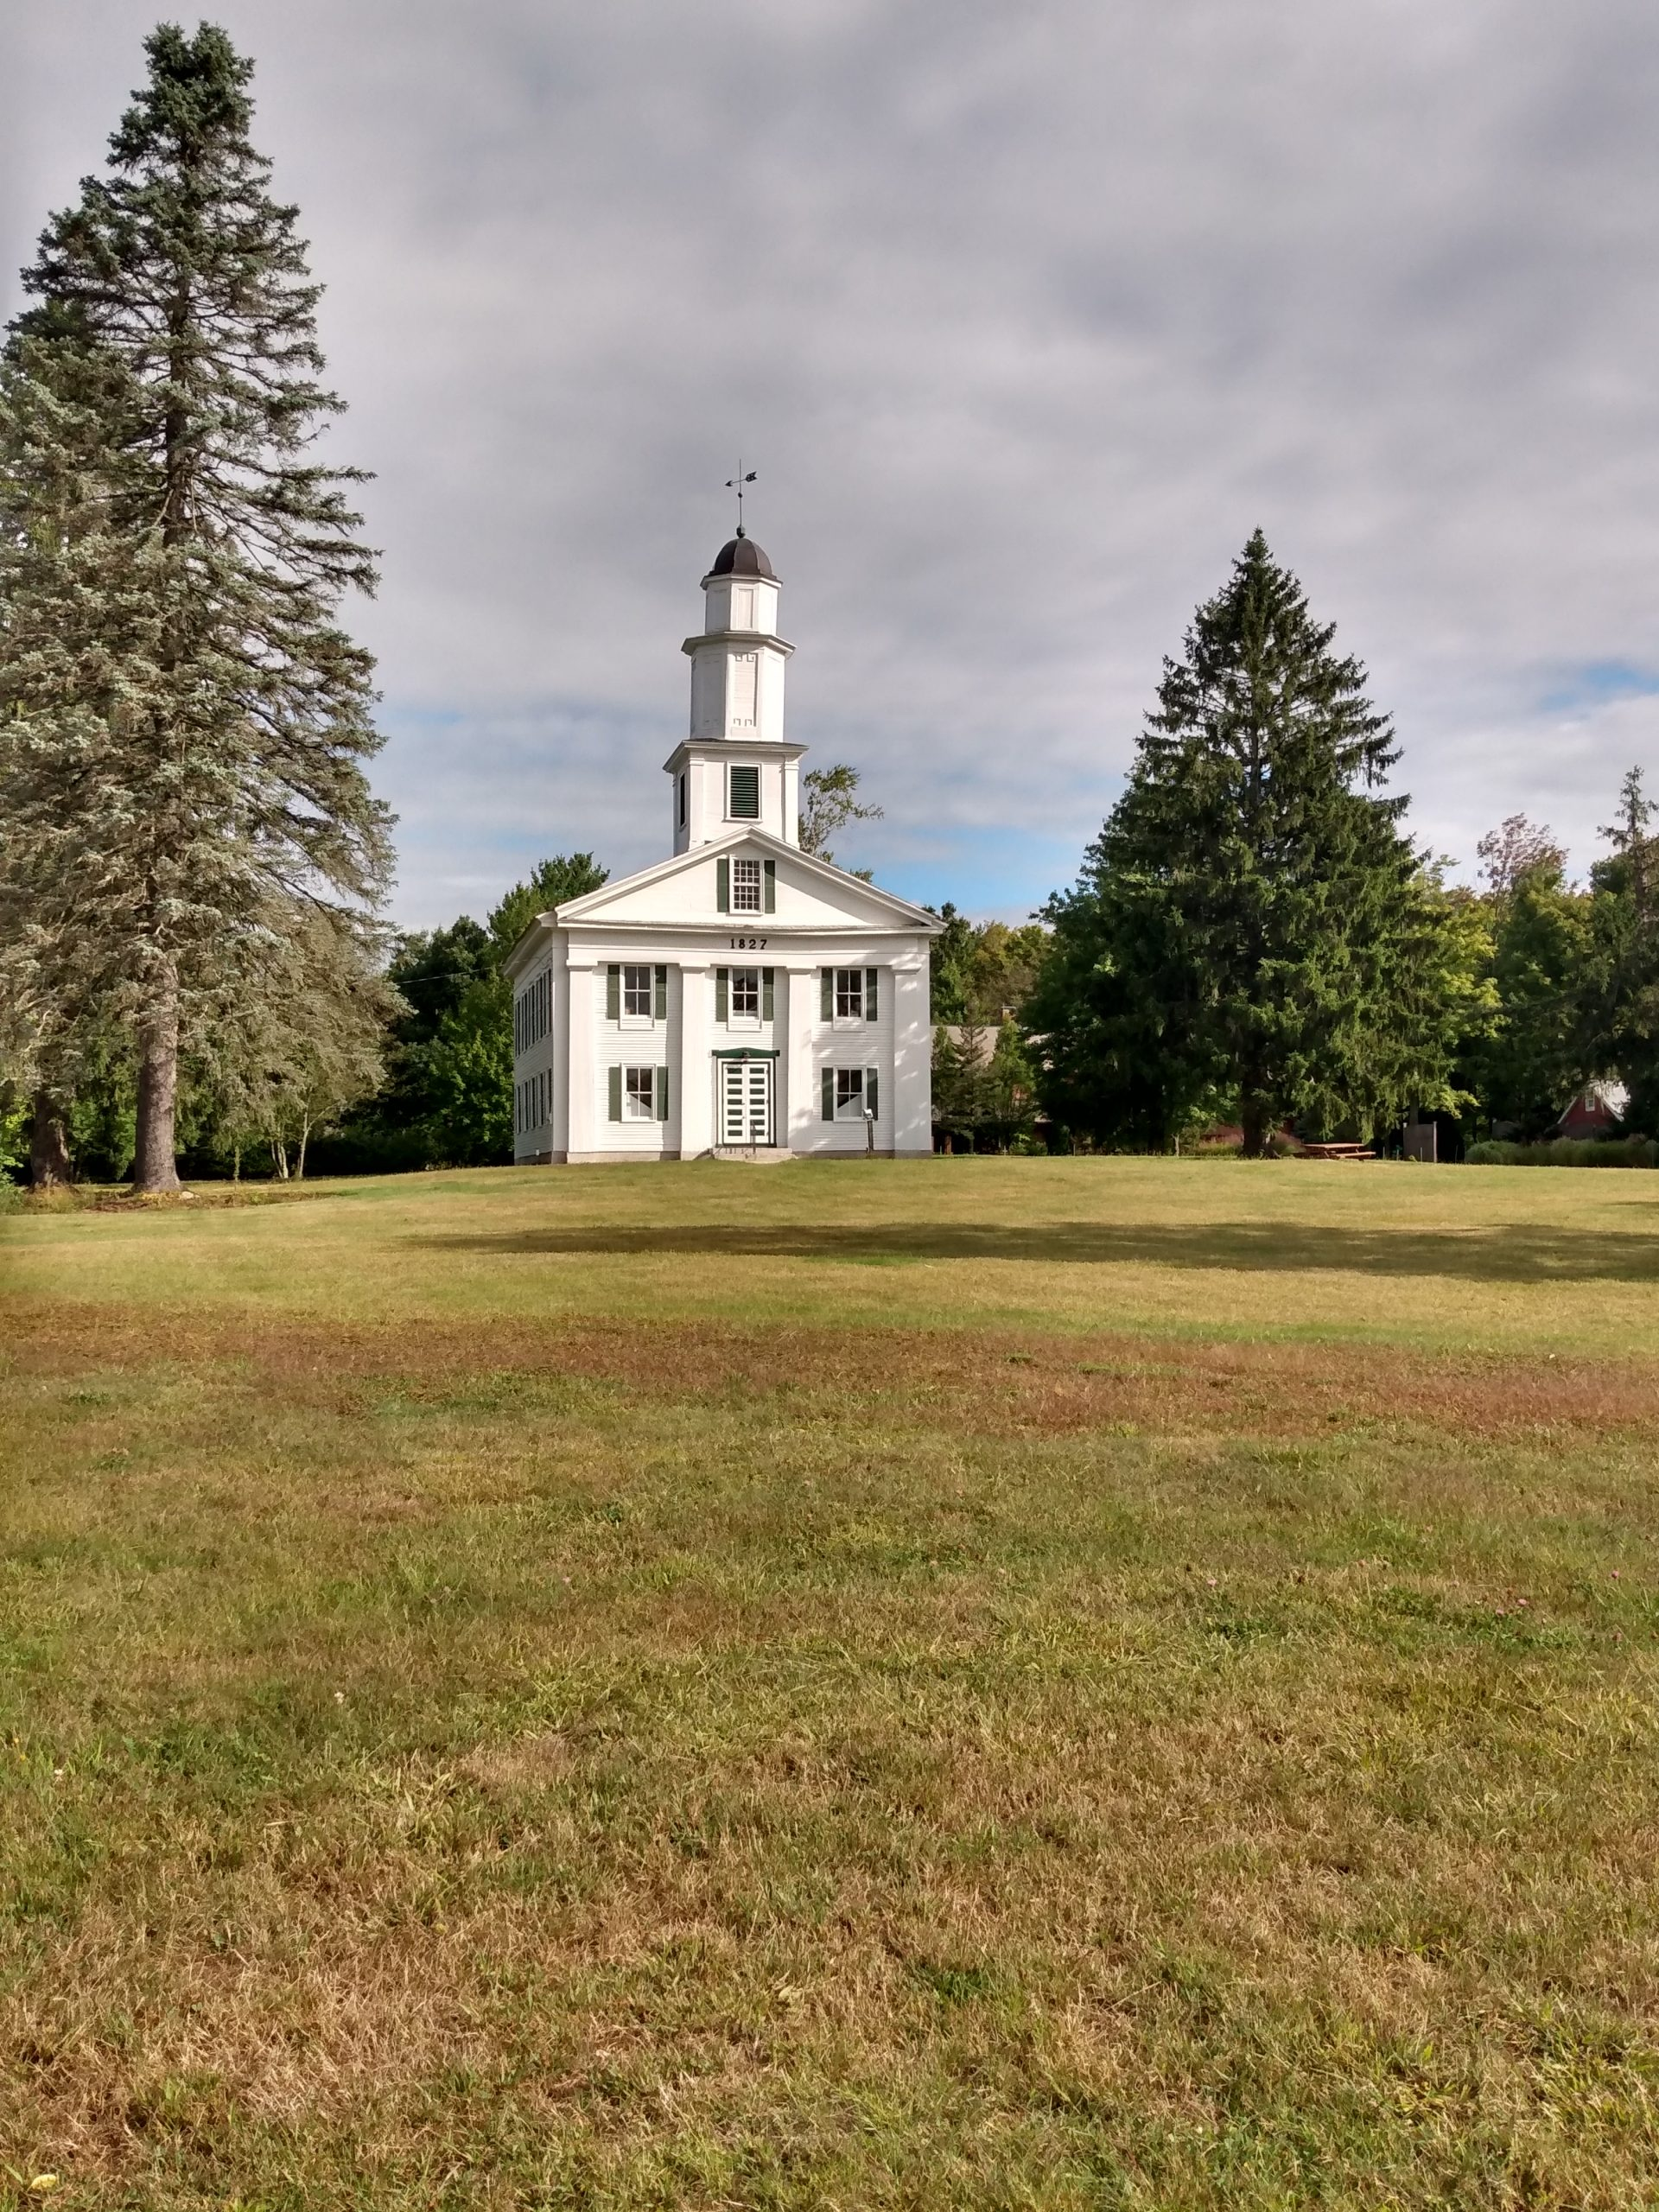 September 7 2019 photo of church